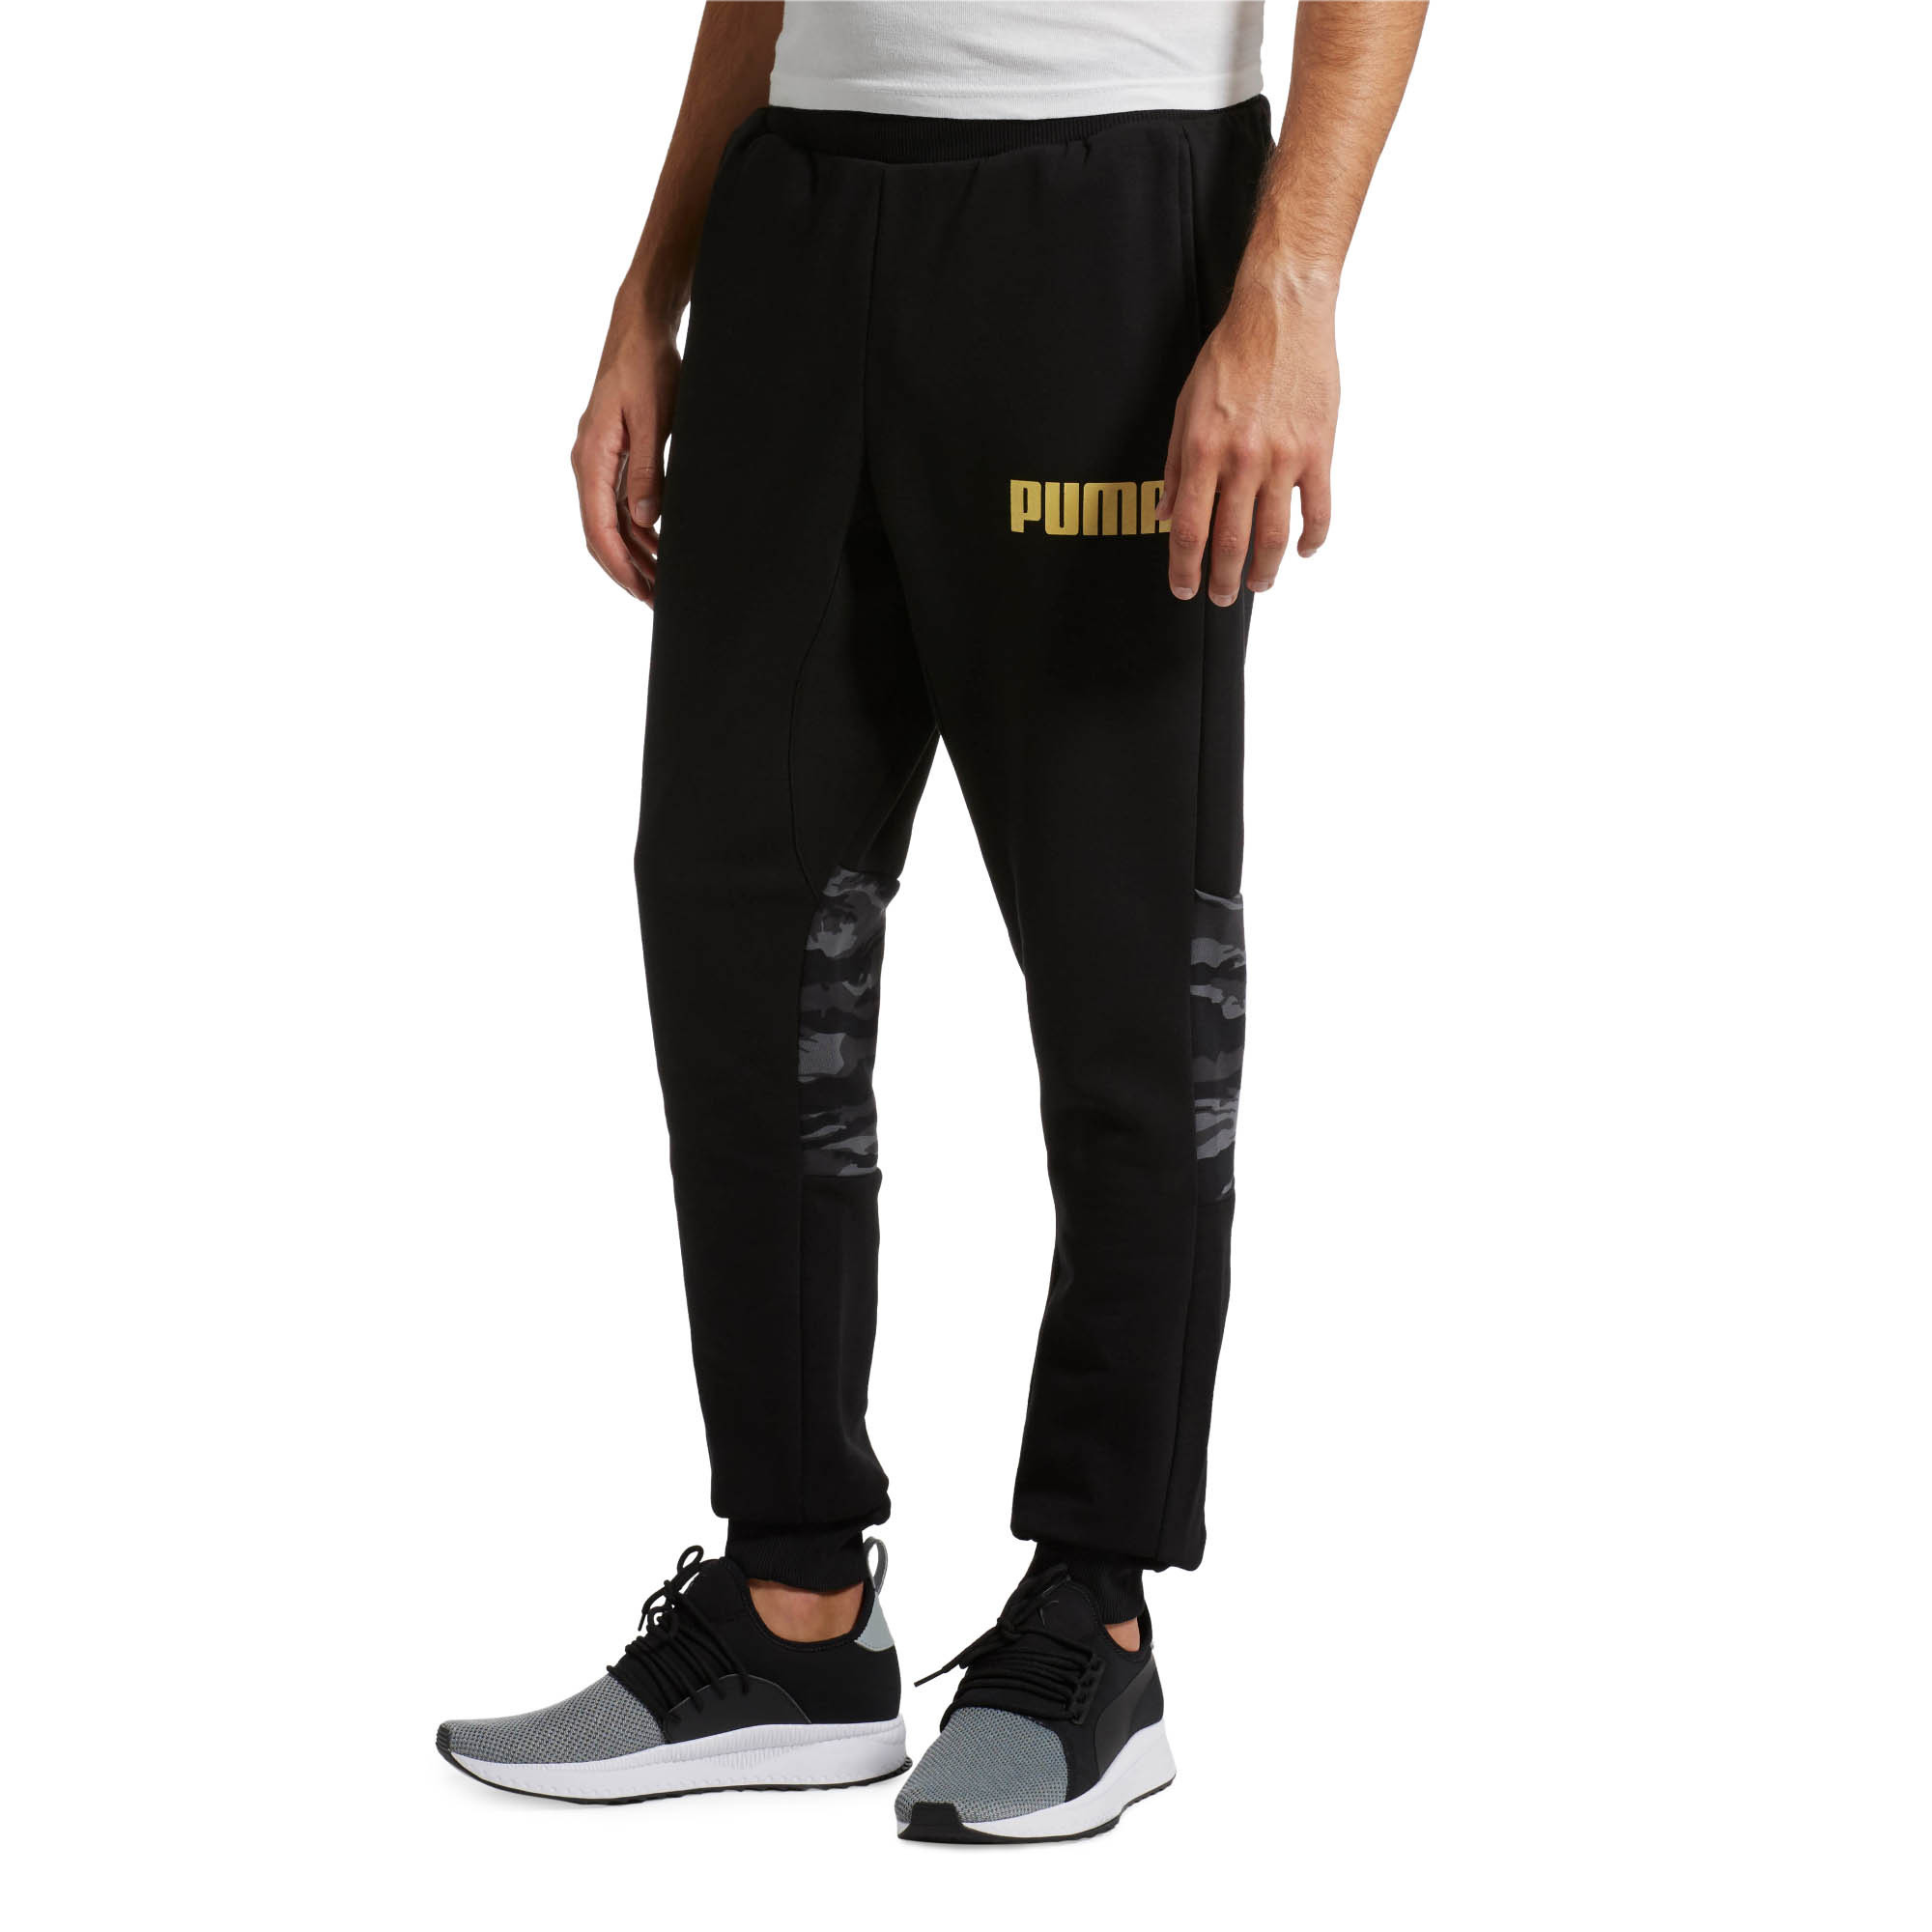 PUMA-Men-039-s-Camo-Sweatpants-Men-Knitted-Pants-Basics thumbnail 3